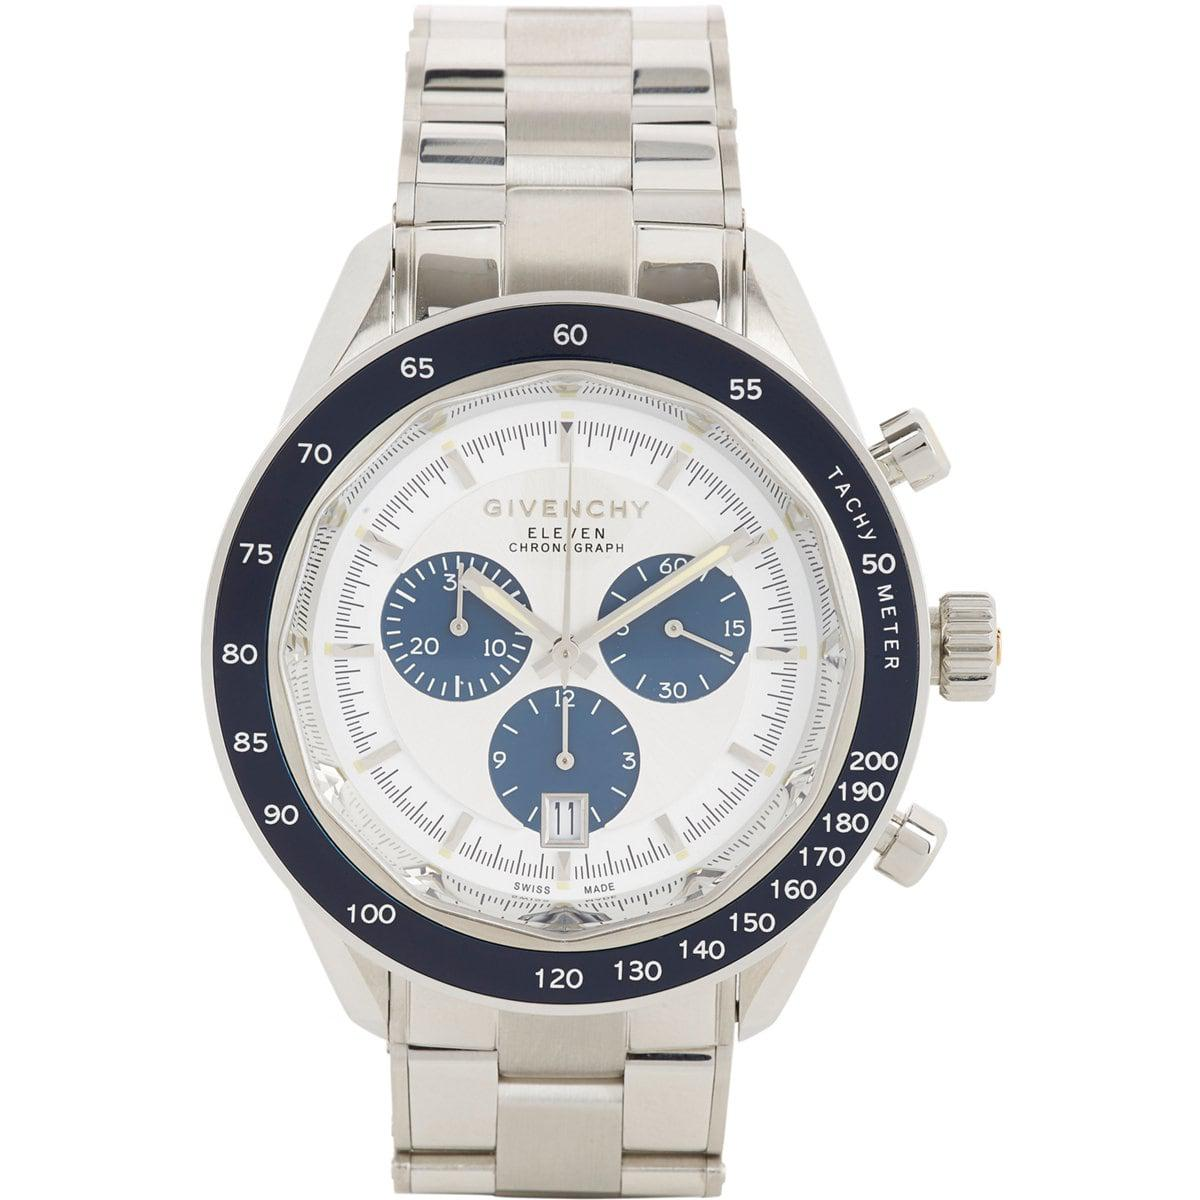 Givenchy eleven chronograph watch in metallic for men lyst for Givenchy watches